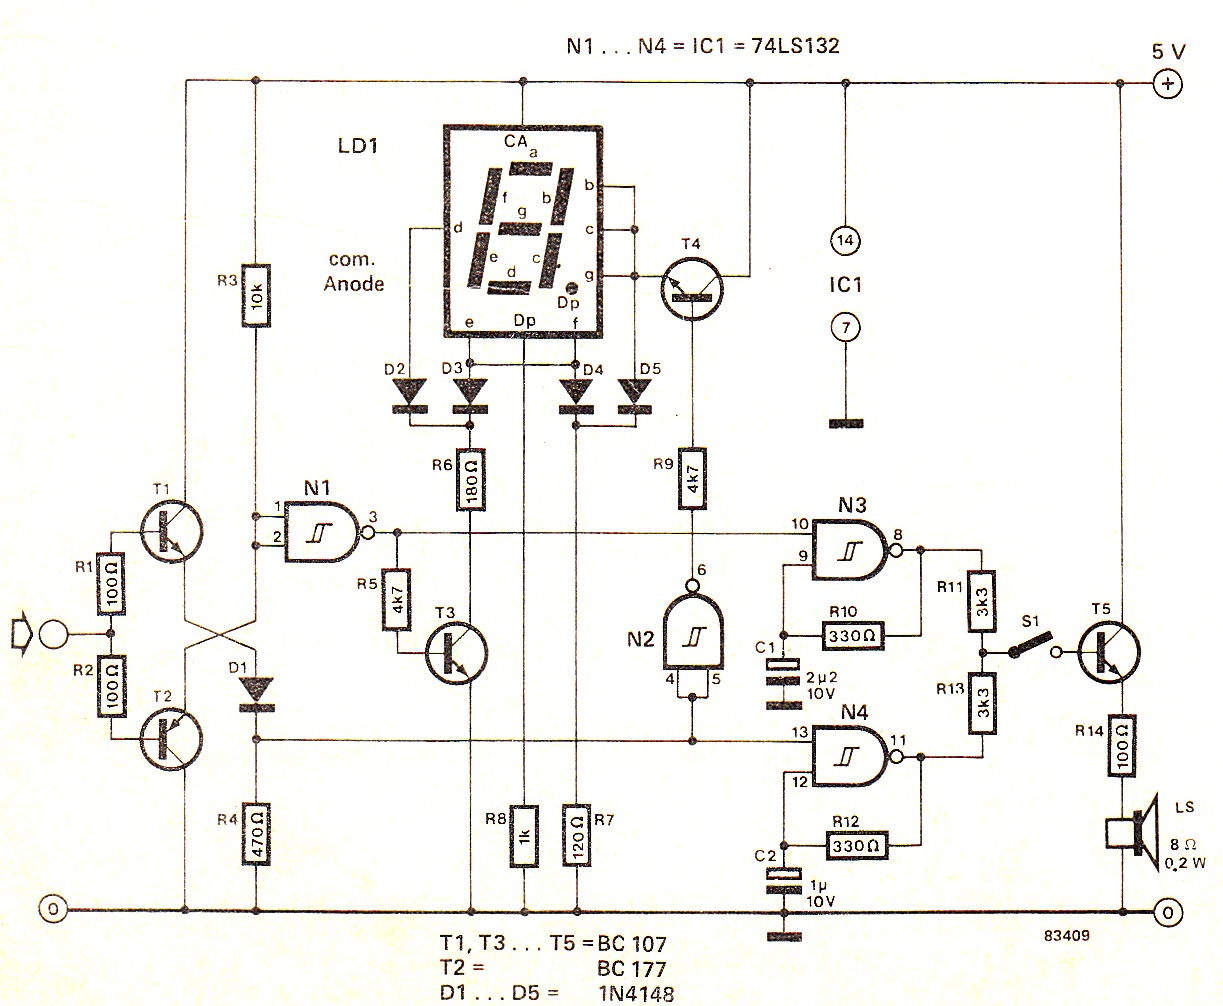 Digital Circuit Diagram Online Manuual Of Wiring Circuits Gt On Off Temperature Control L45153 Nextgr Simple Rh 38 Mara Cujas De Maker Schematic